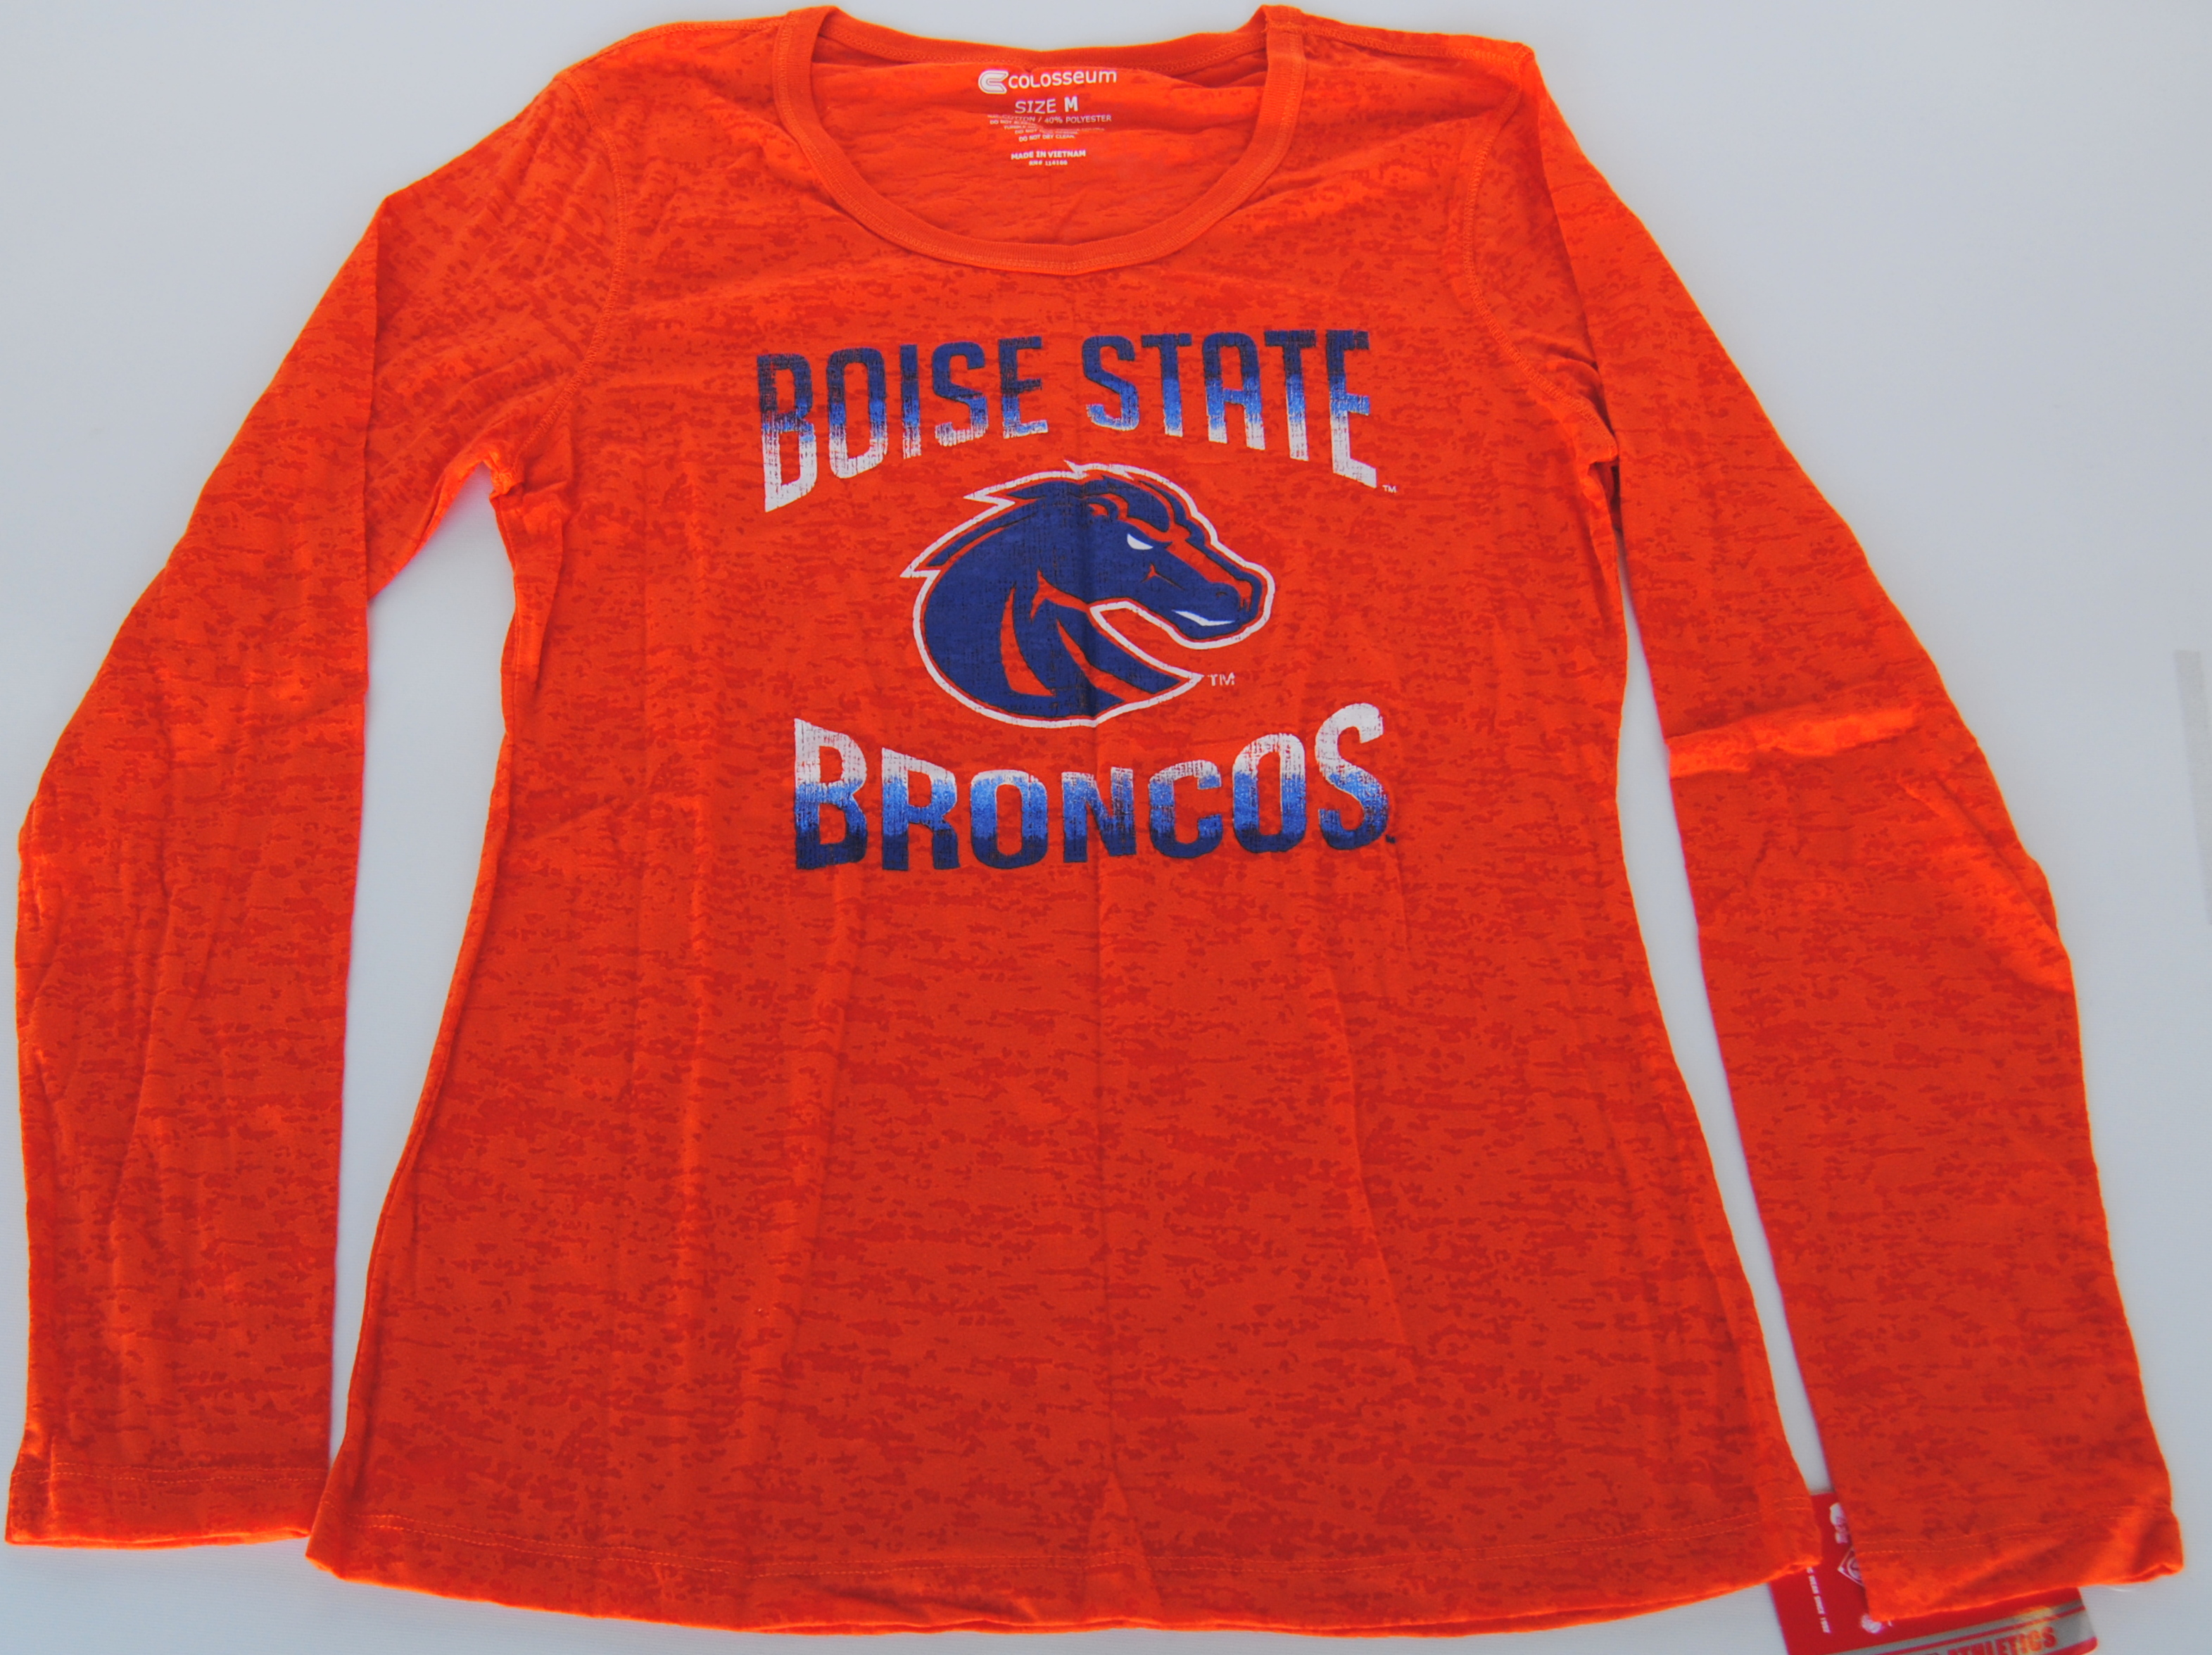 Colosseum Athletics Boise State Broncos Colosseum Athletics Orange Women's Long Sleeve T-Shirt (M) at Sears.com